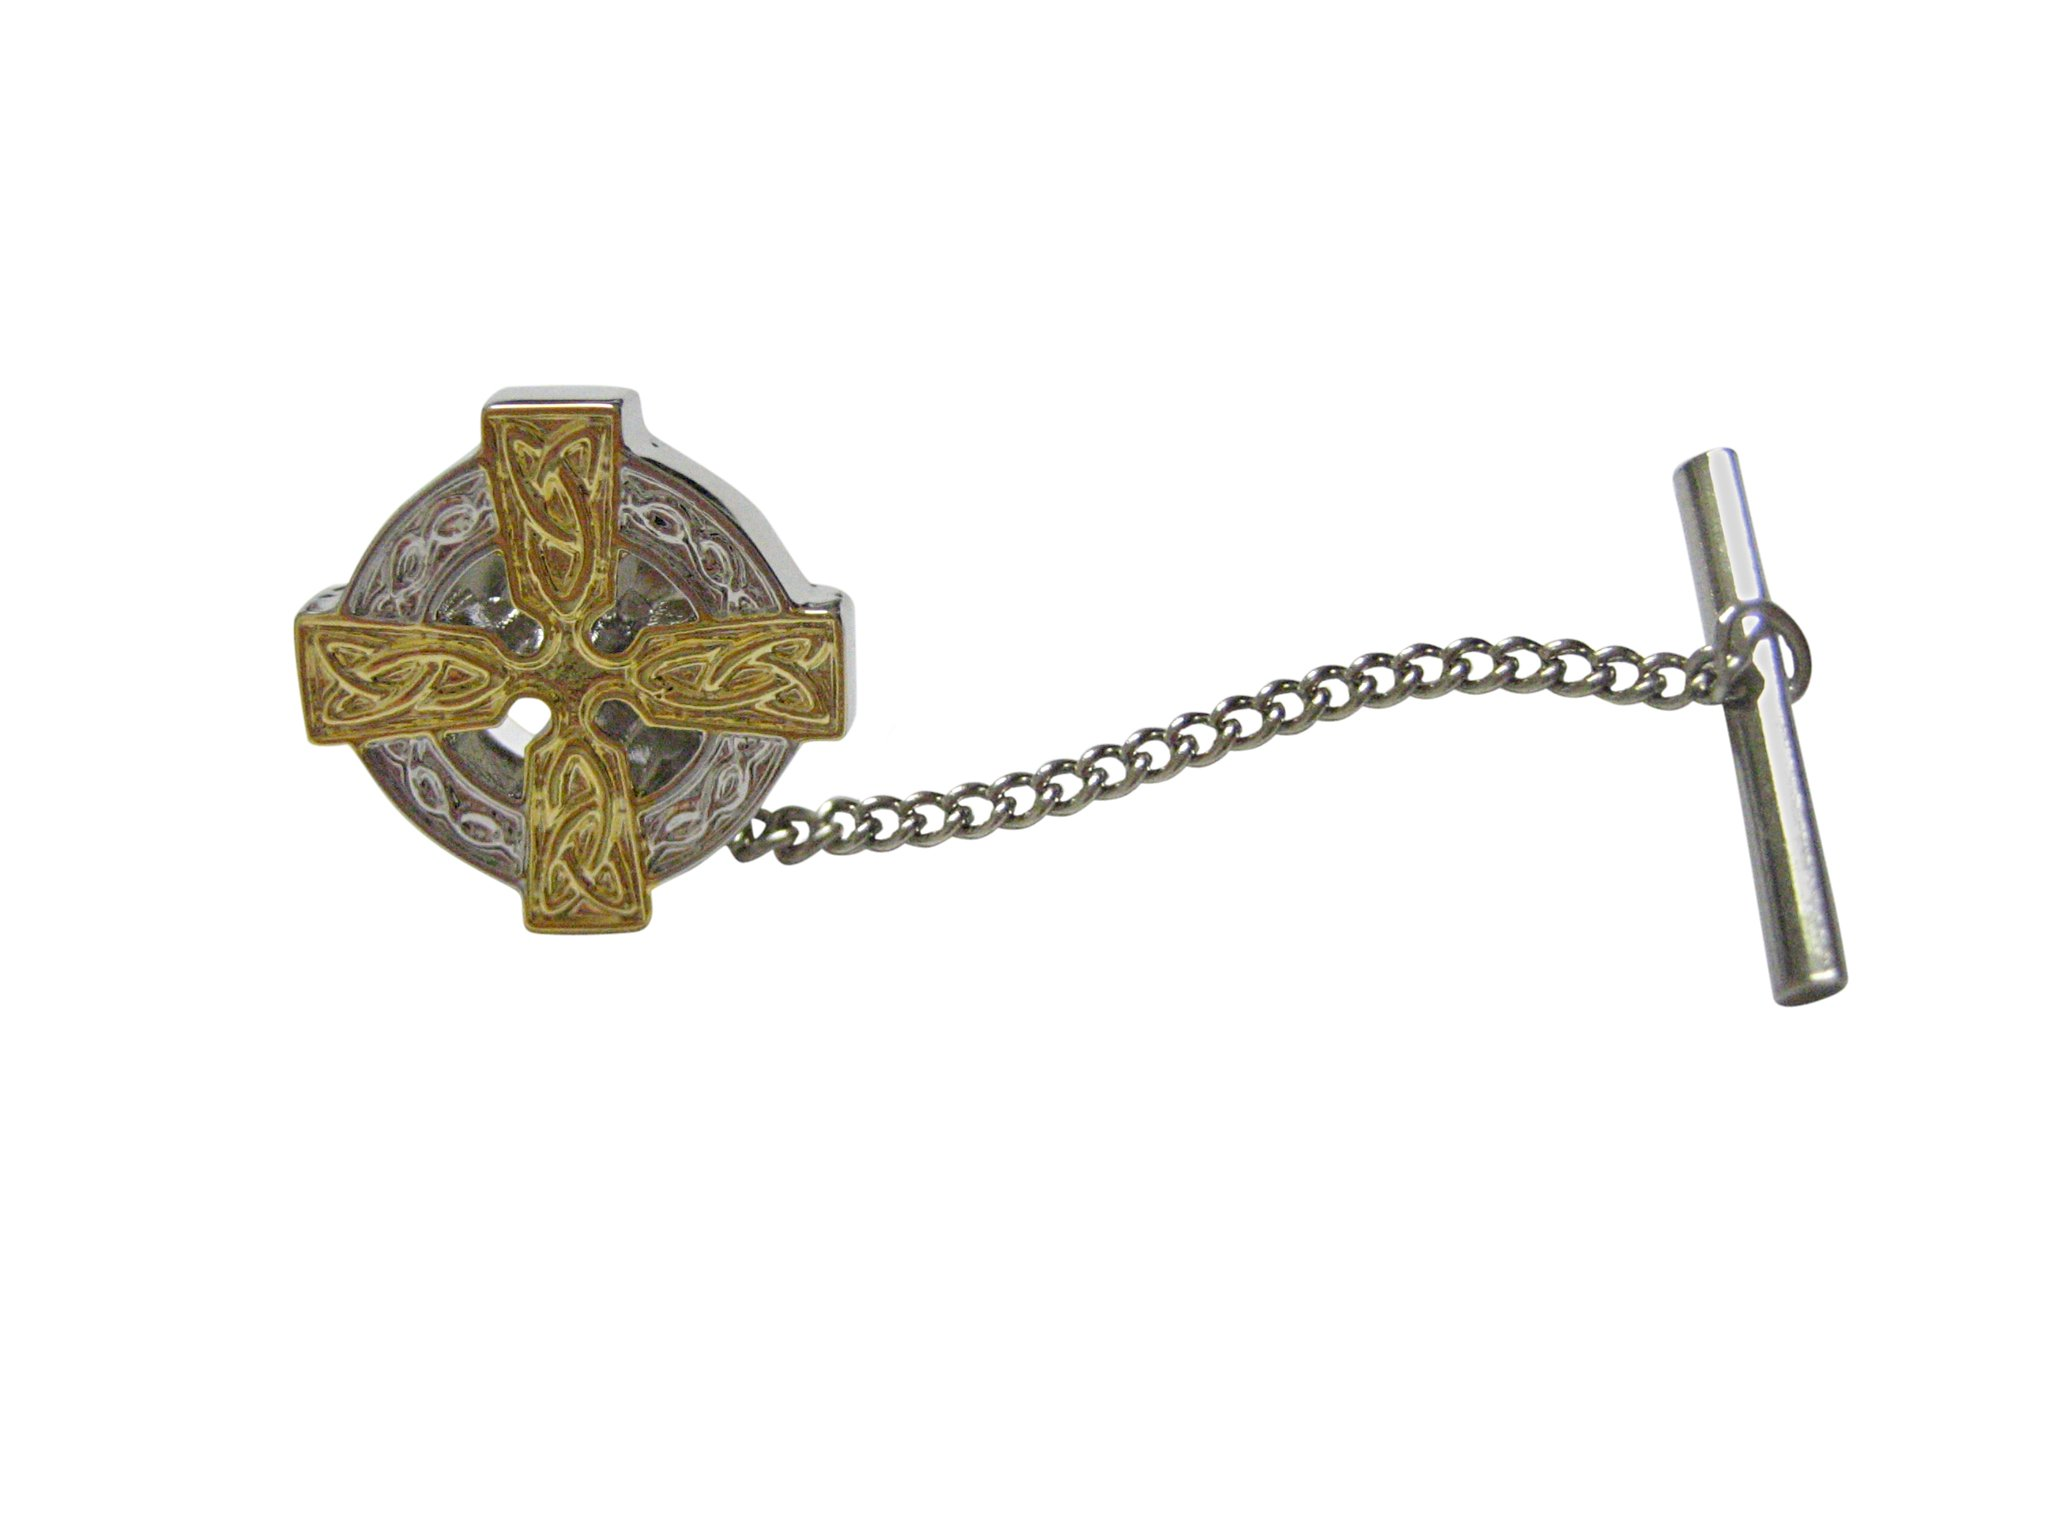 Gold and Silver Toned Celtic Cross Tie Tack